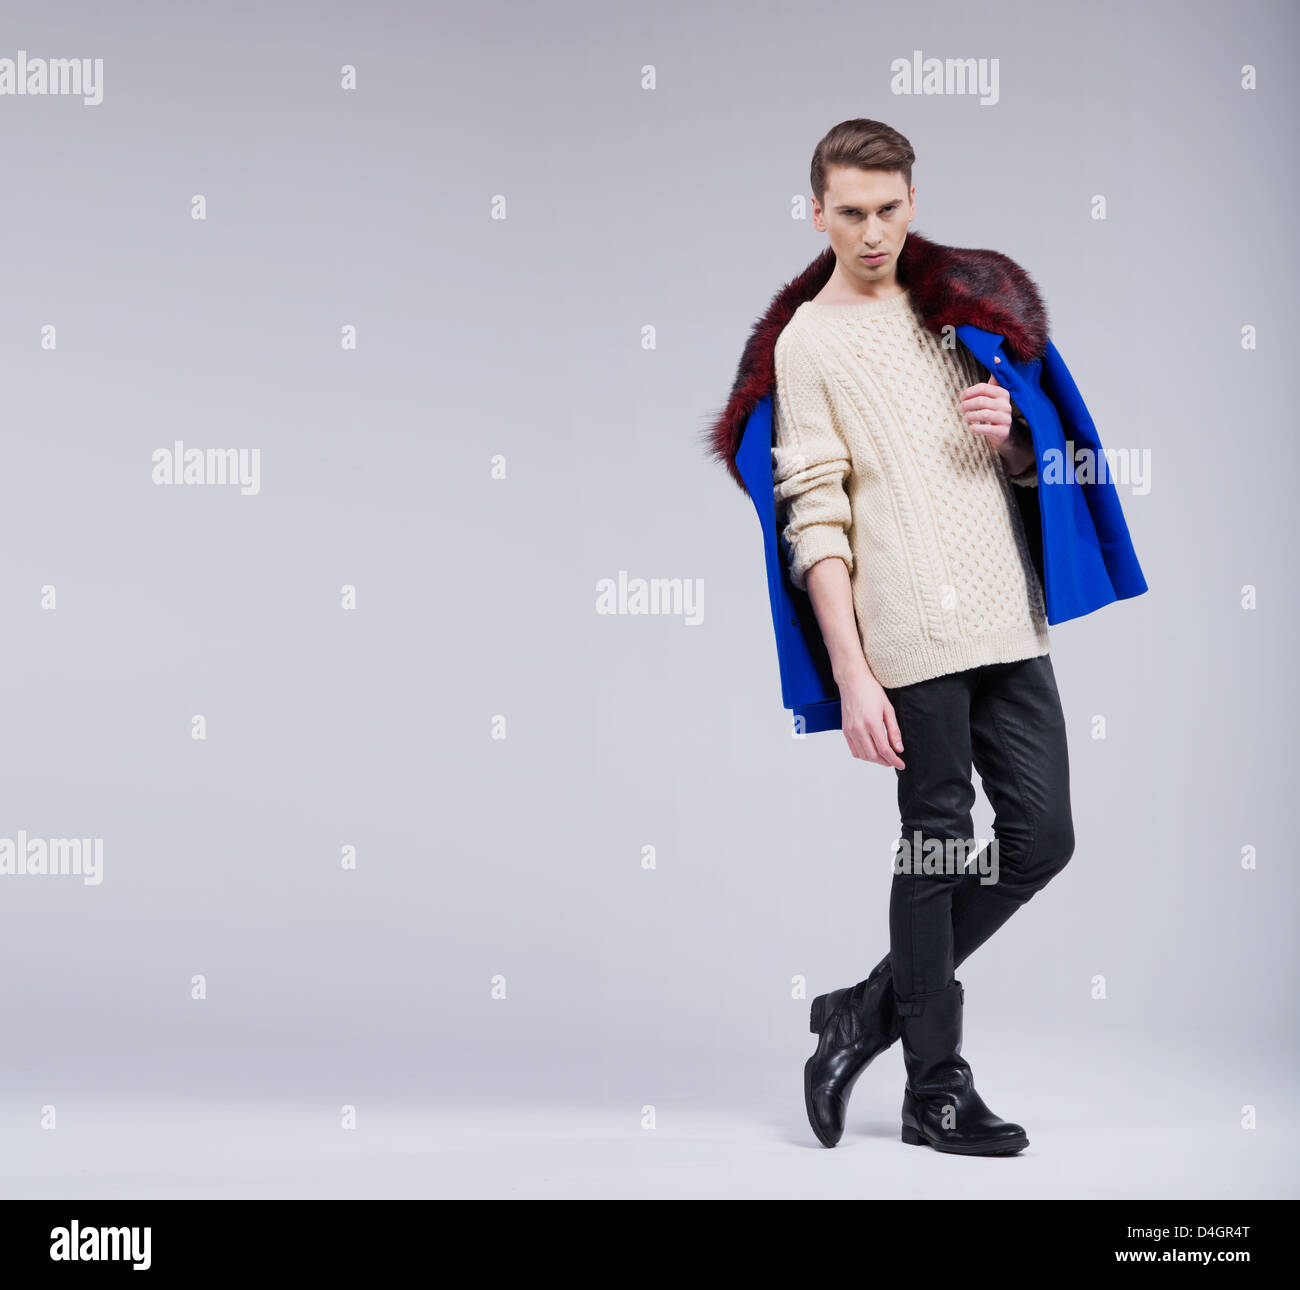 Serious slim guy in natural pose - Stock Image